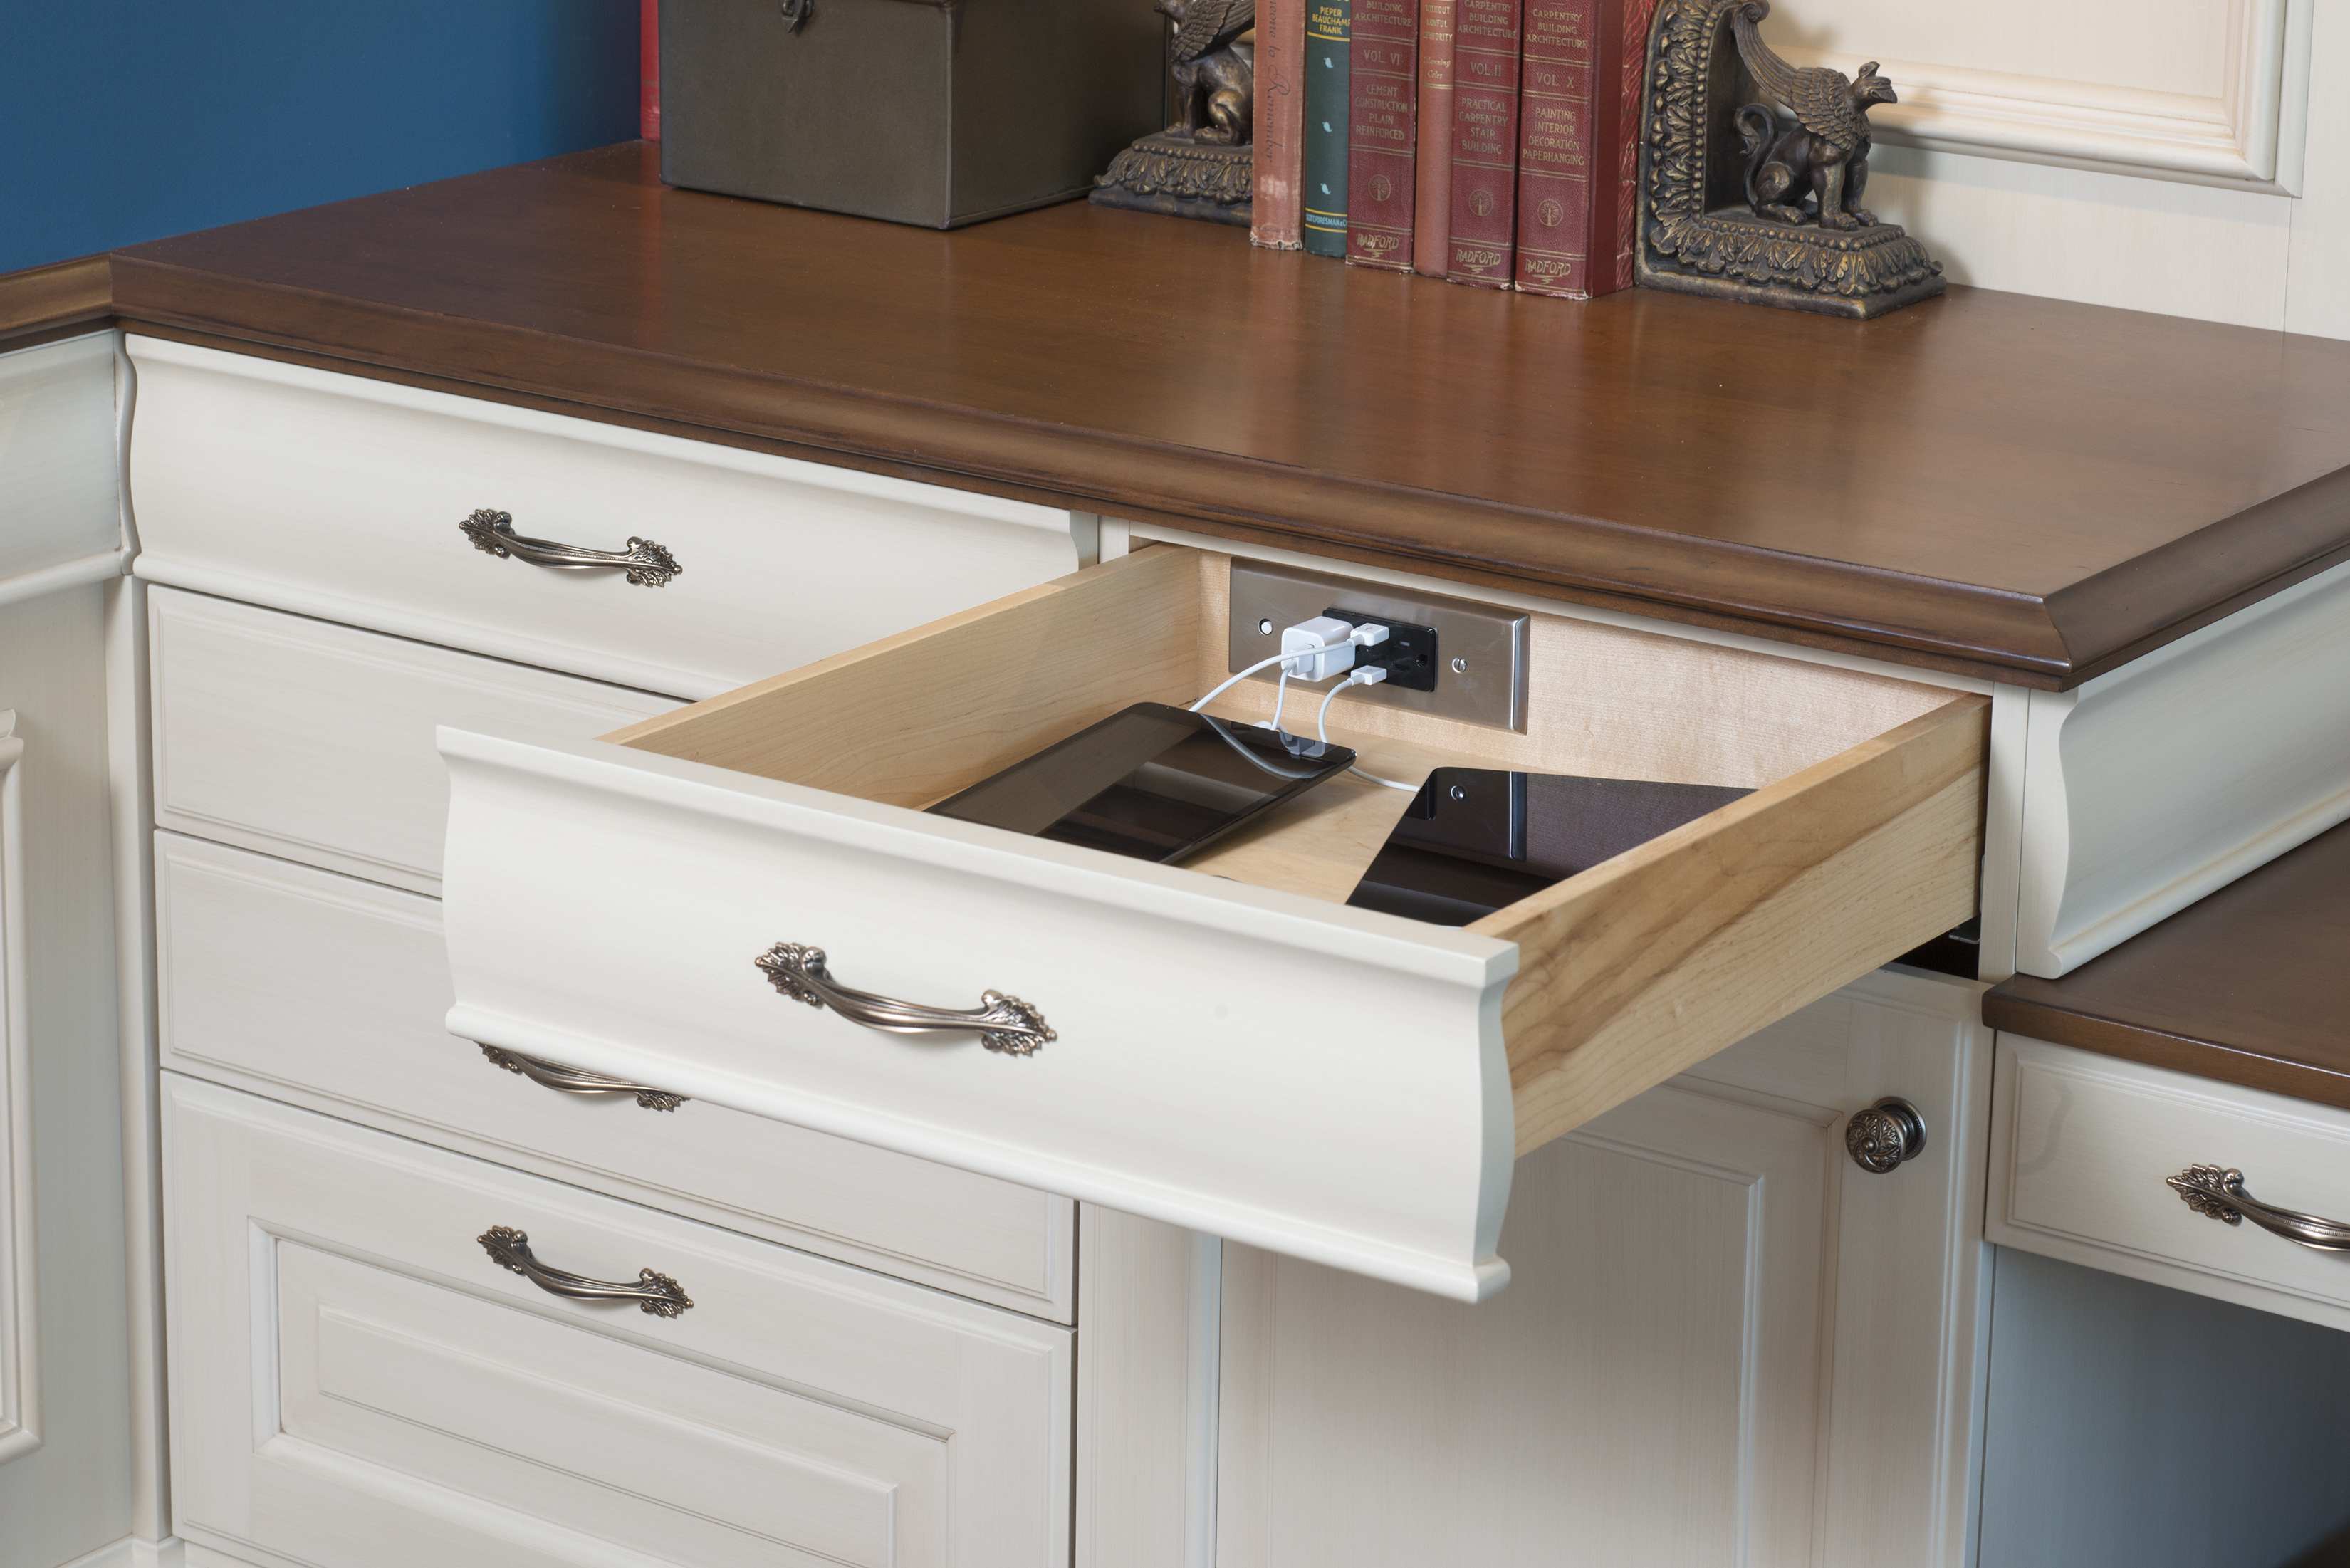 Bathroom Light Barth Electrical Outlet Vanity Power: Wood-Mode Offers New In-Drawer Electrical Outlets